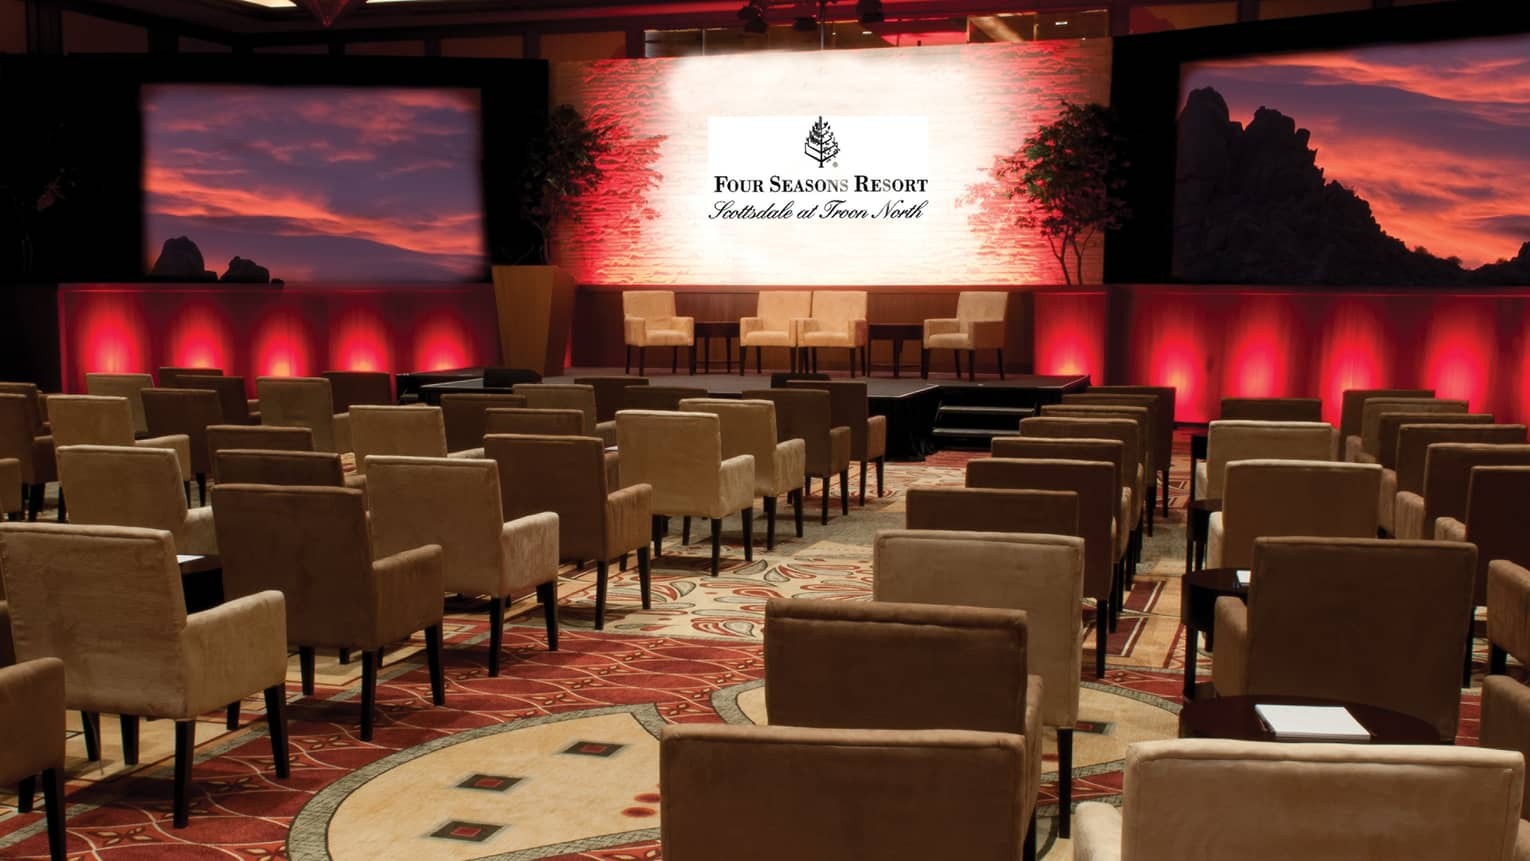 Pinnacle Ballroom conference with rows of chairs  facing large screen, projected red sunset image